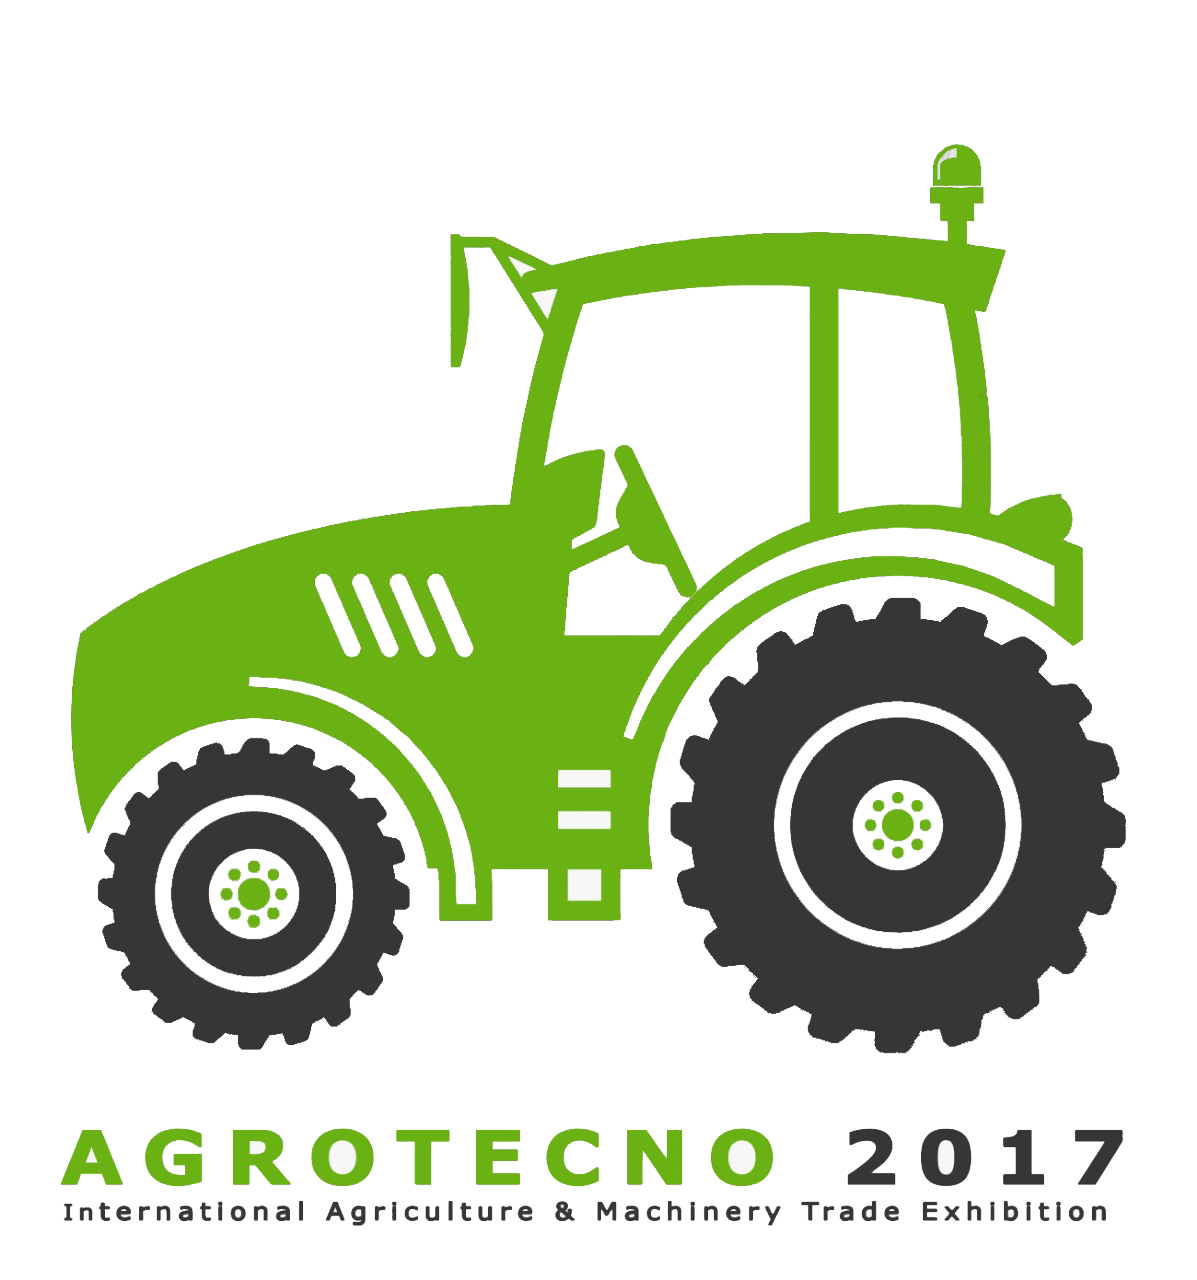 clip freeuse download Farmers clipart agriculture technology. Agrotecno logo.